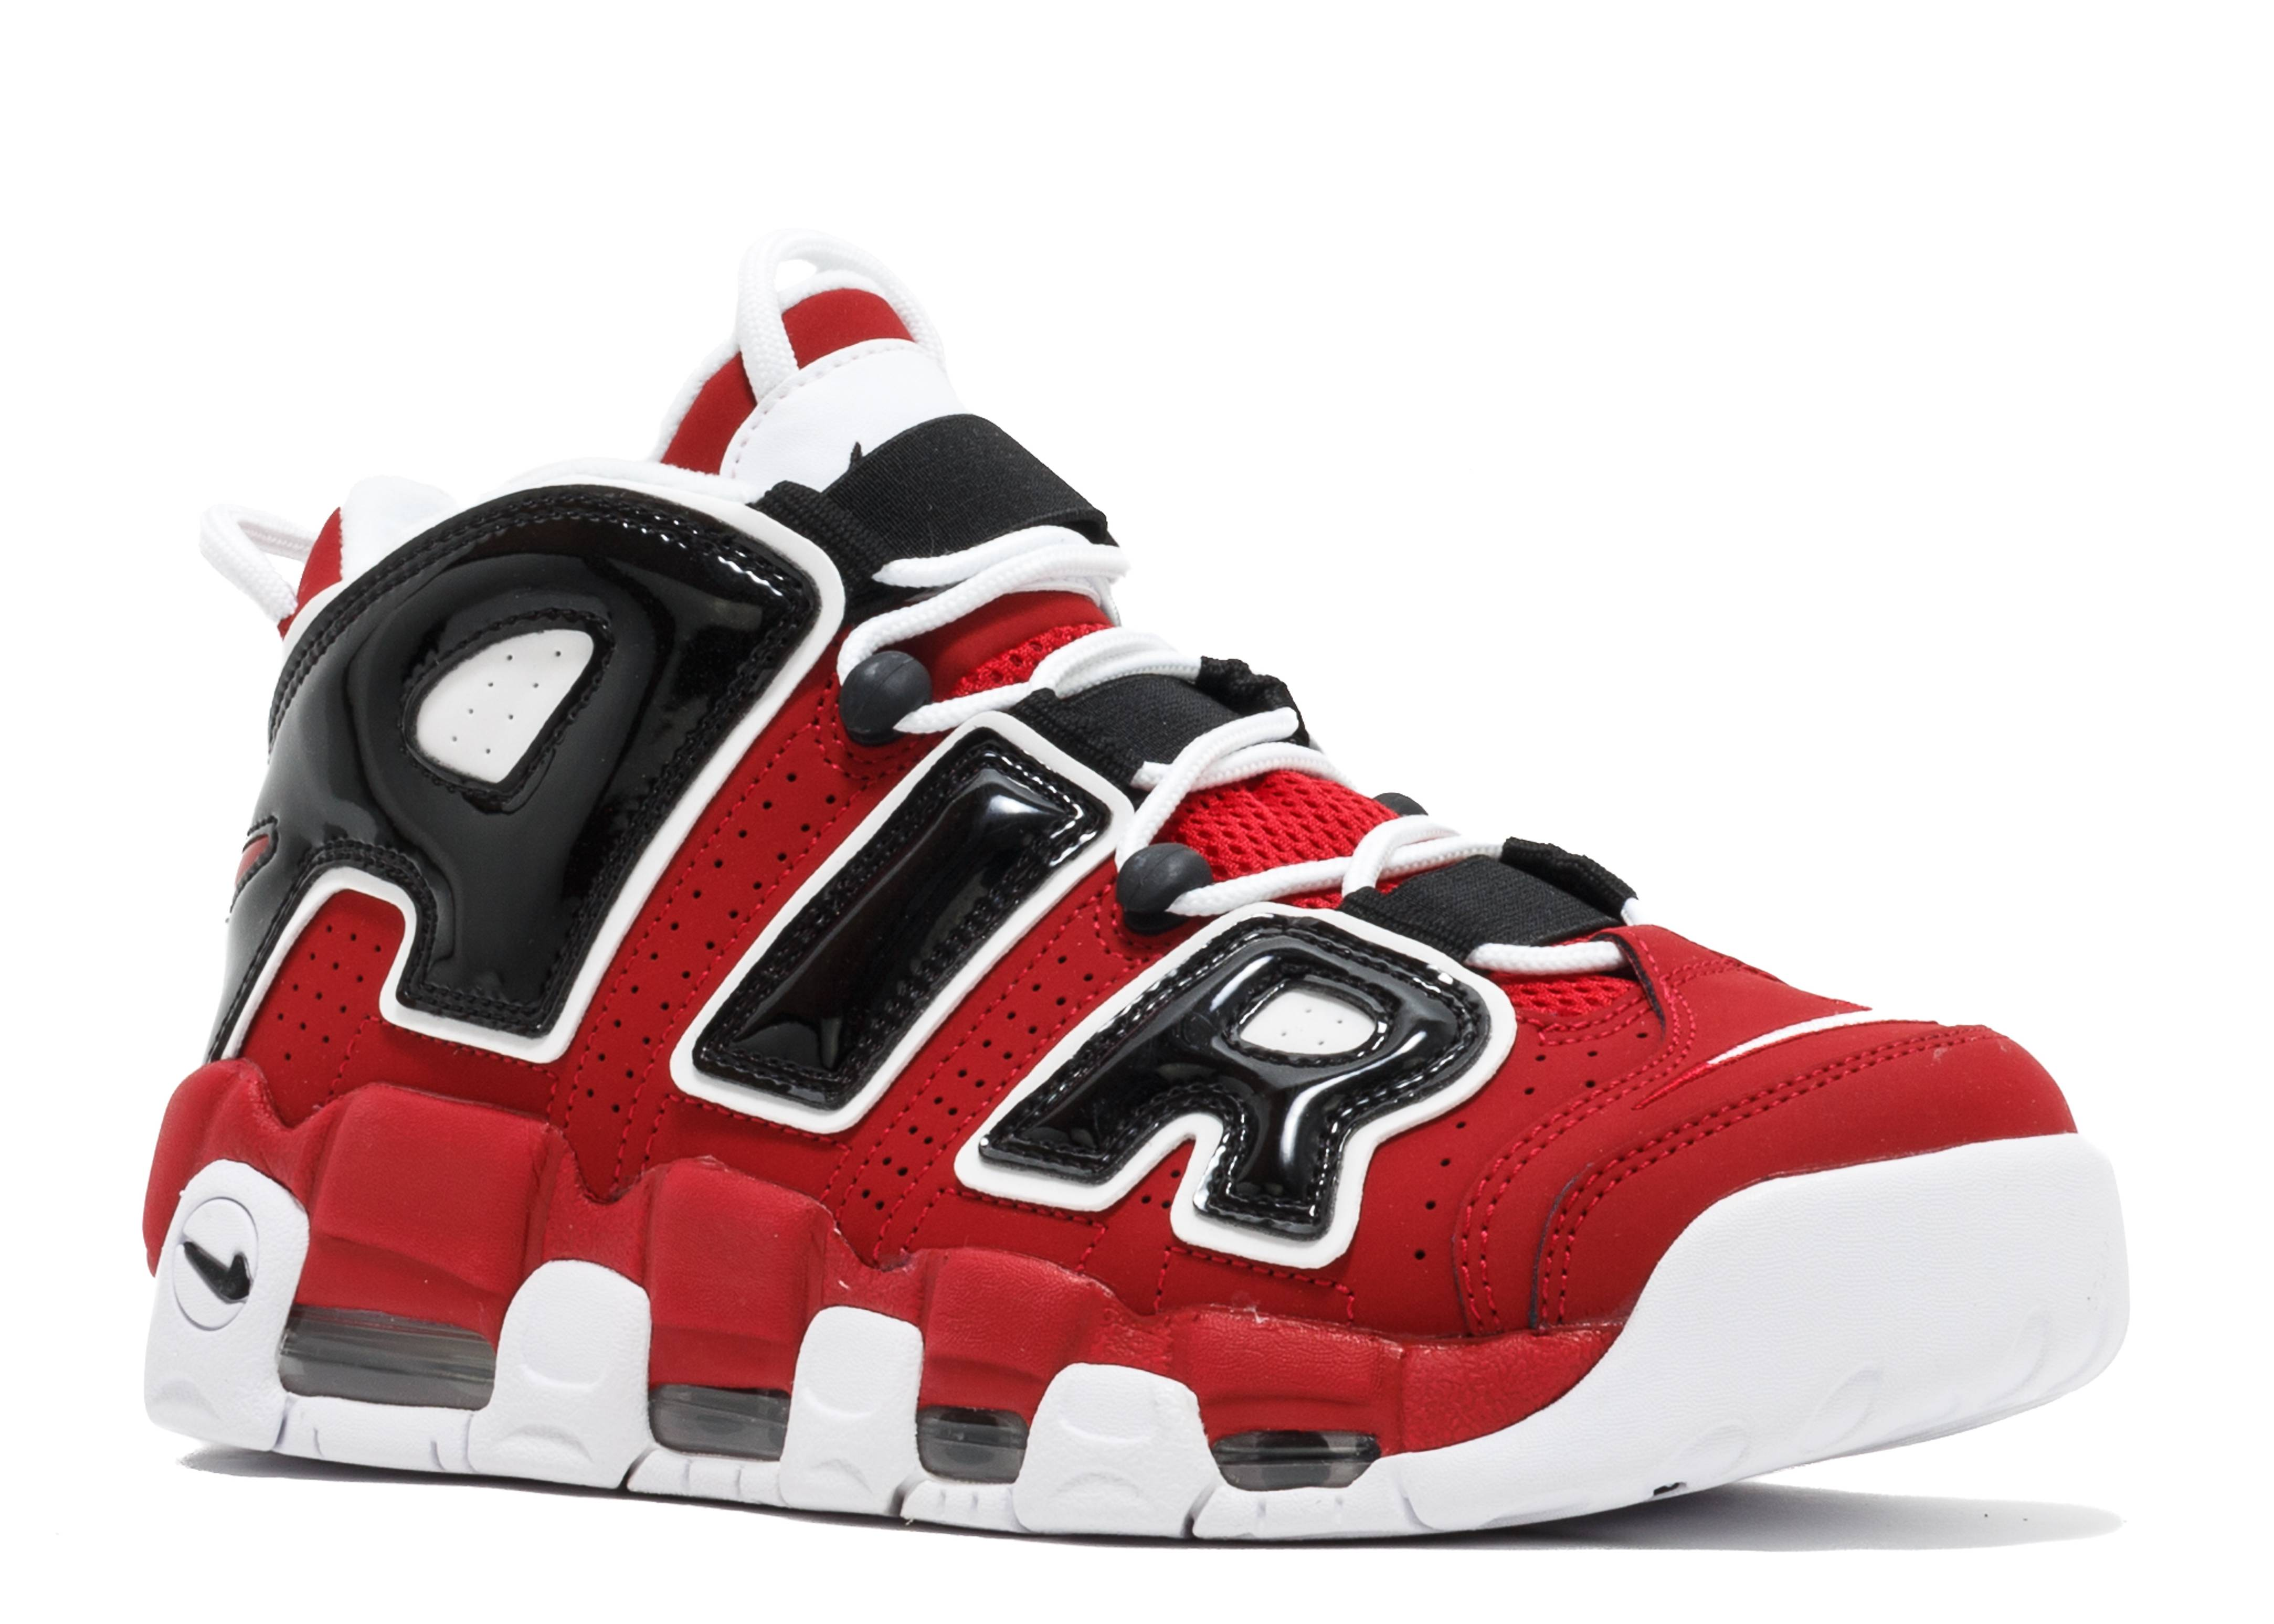 Nike Air Uptempo Mens Shoes Maroon